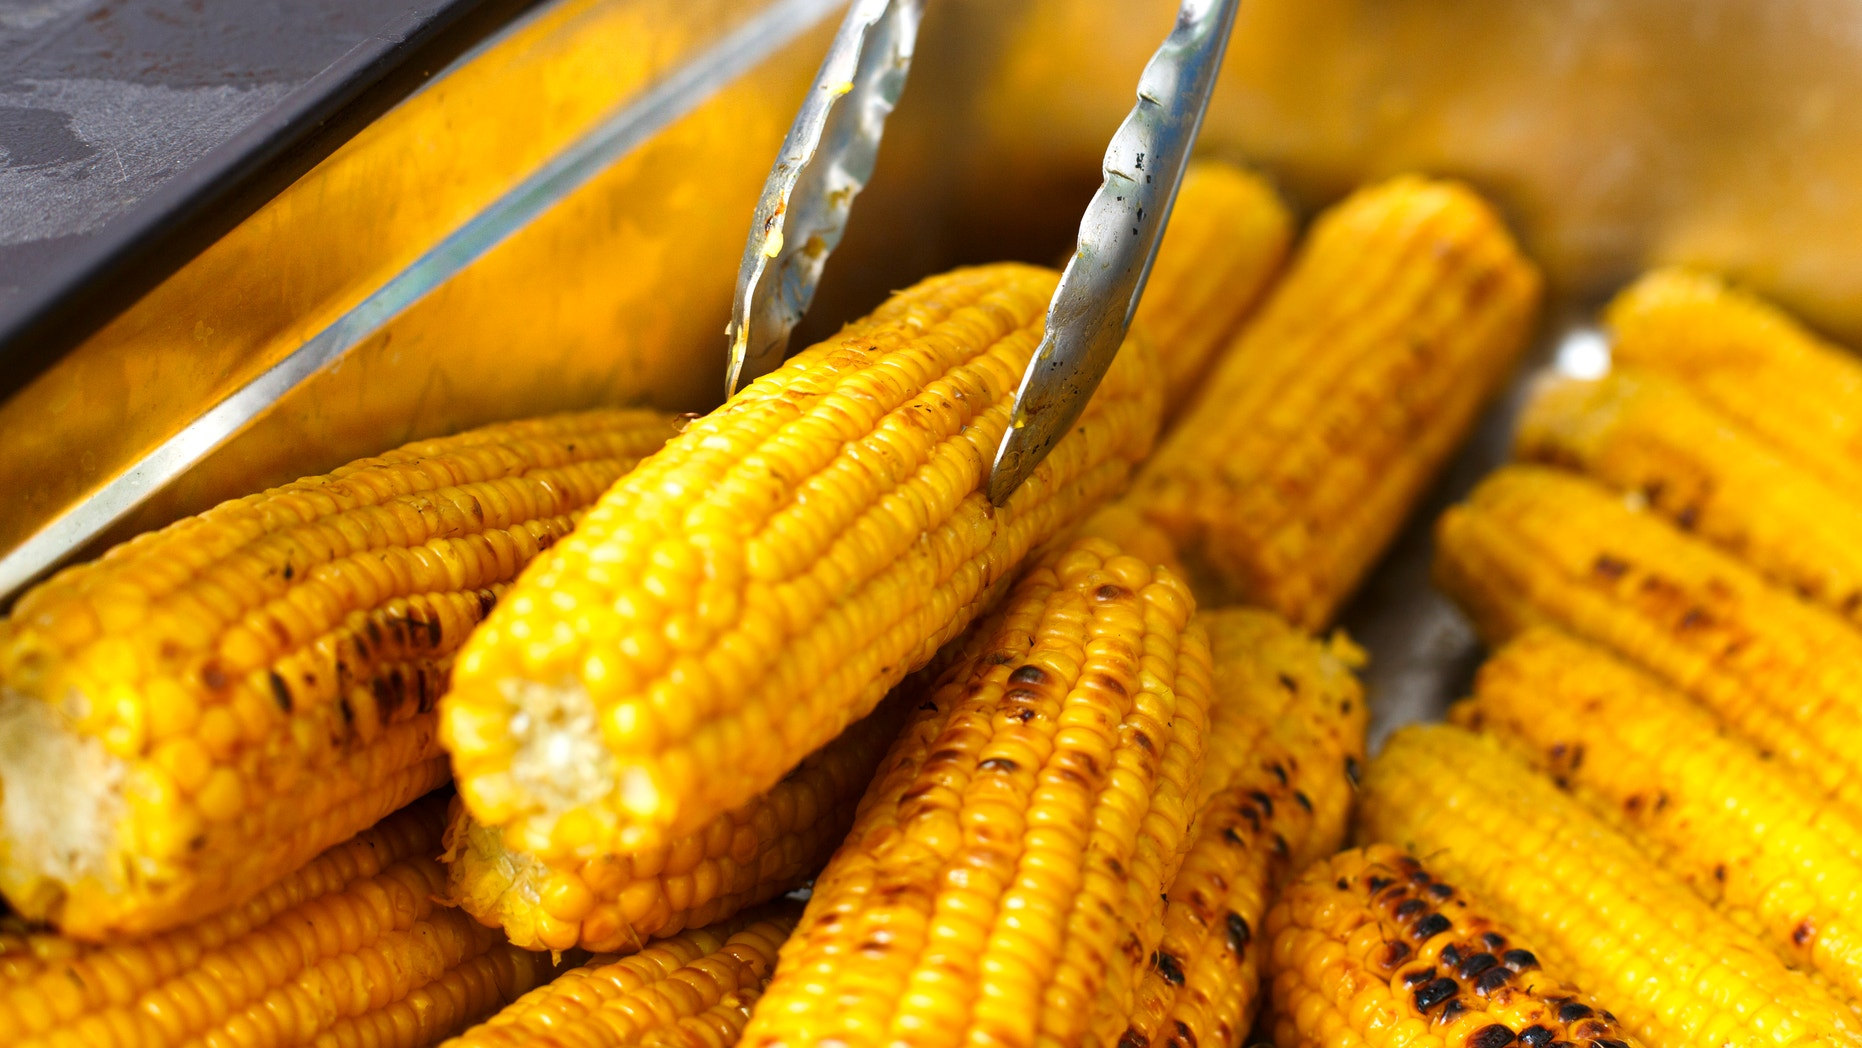 Vegan bbq party. Barbecue corns outdoors. Cookout bbq vegetable food. Fresh organic, healthy vegetarian grilled snack, corncobs cooked on grill. Street food, fast food. Tasty natural food.